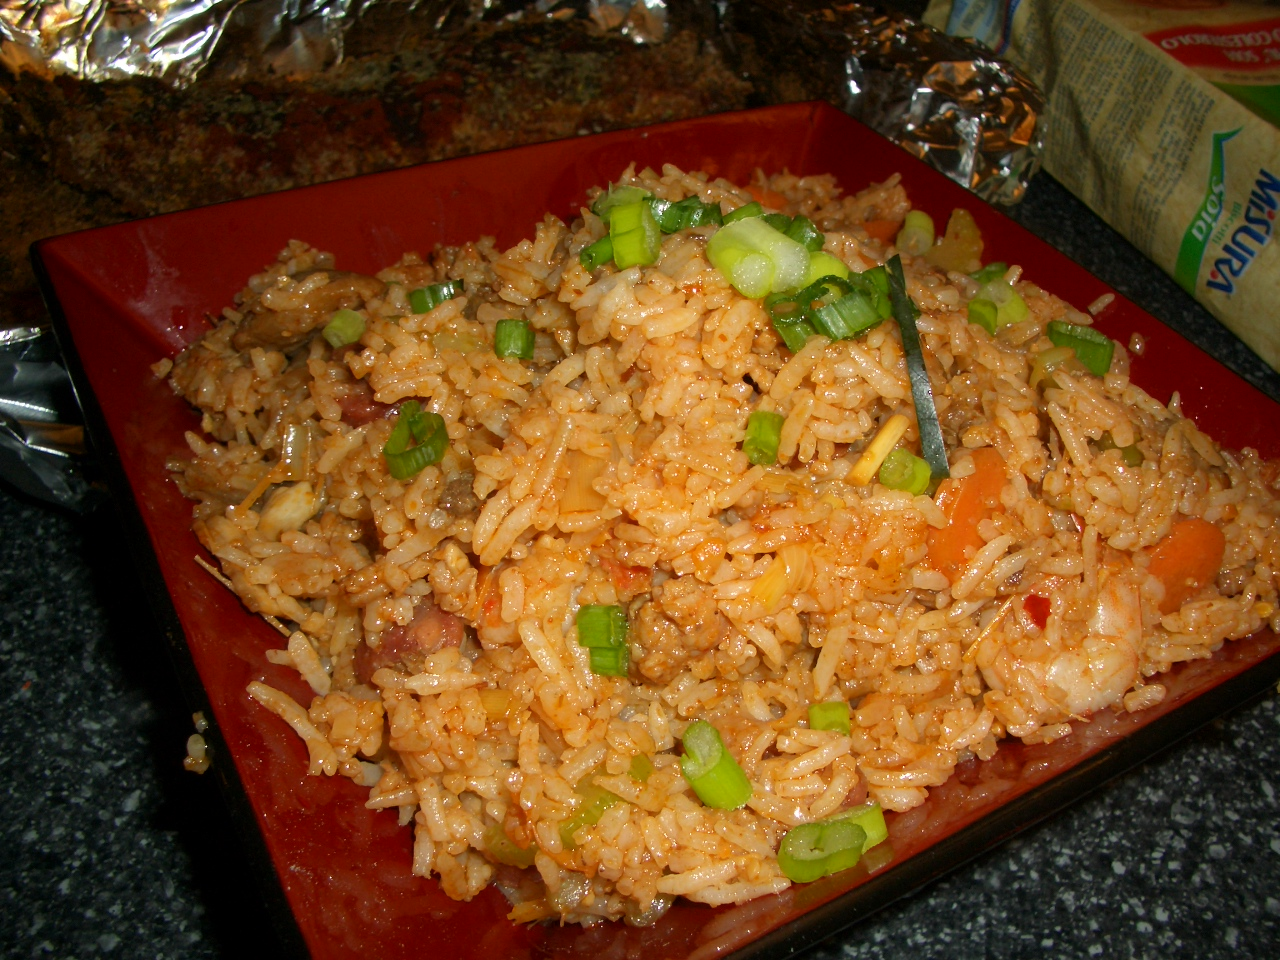 File:Fried rice in Singapore.jpg - Wikipedia, the free encyclopedia